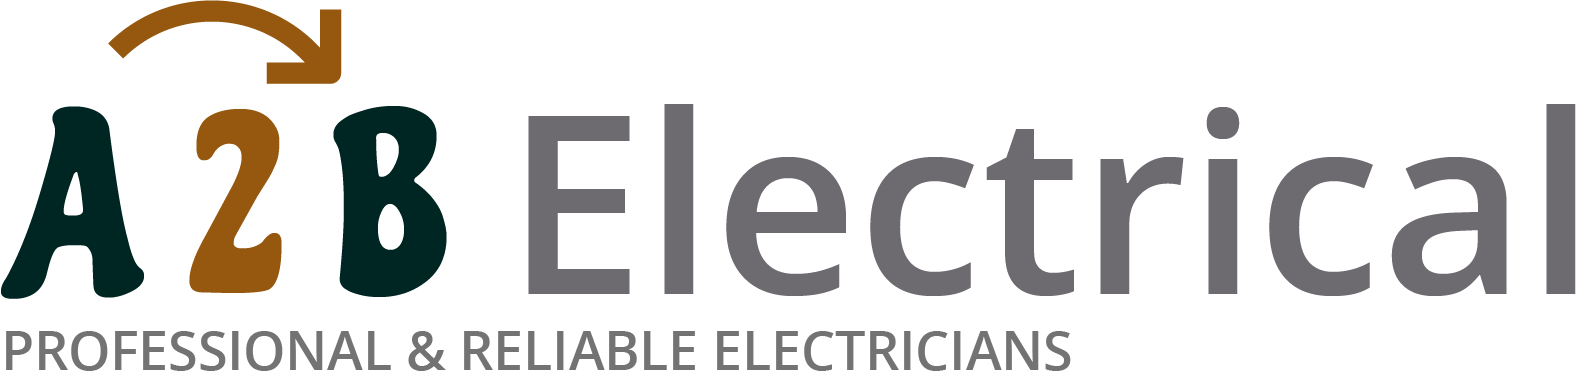 If you have electrical wiring problems in South Ockendon, we can provide an electrician to have a look for you.